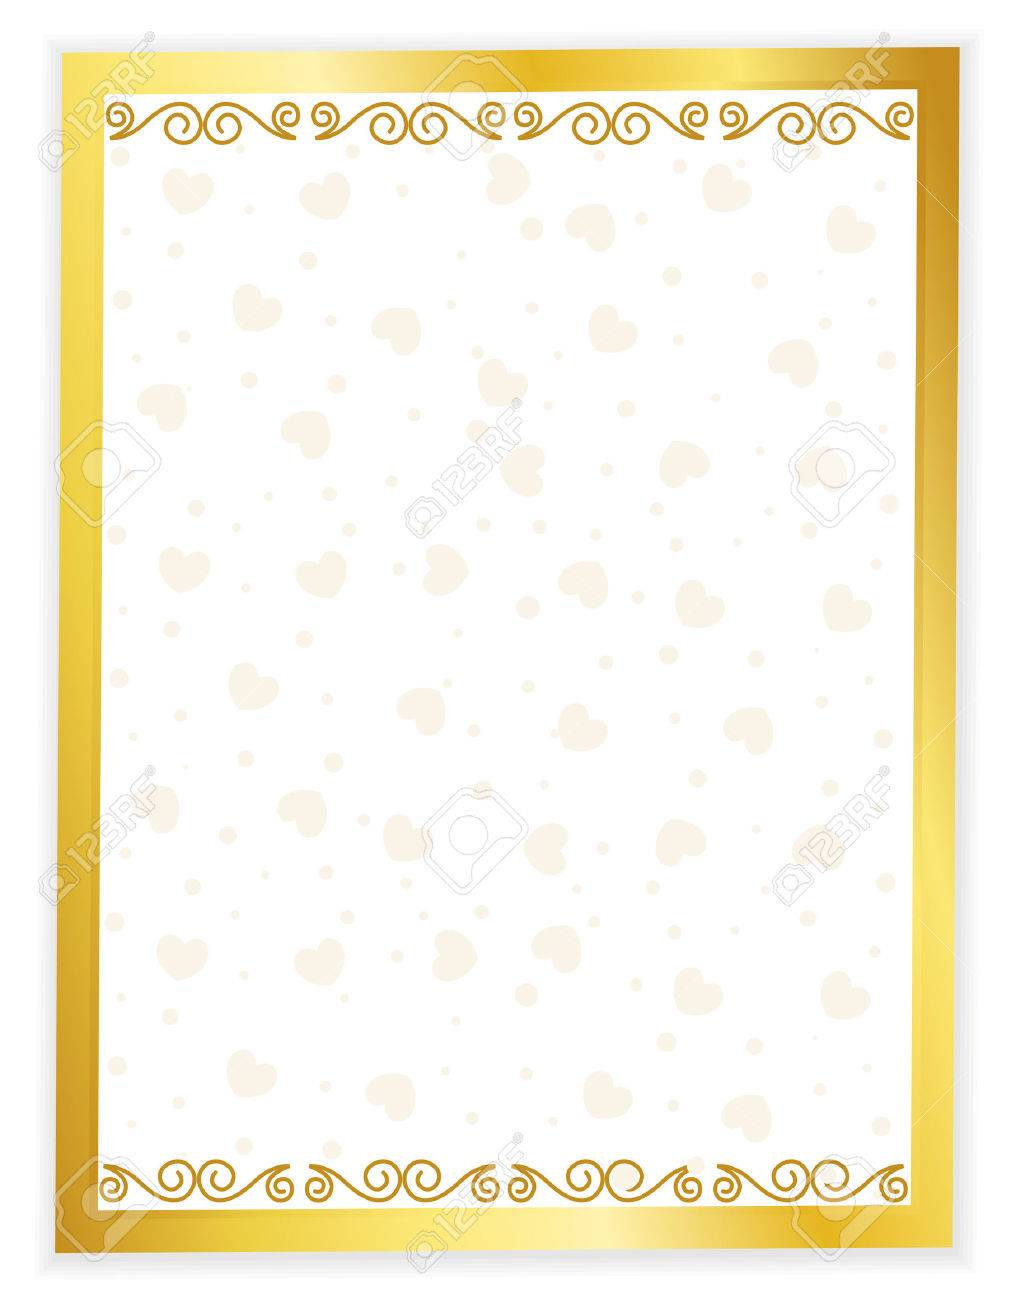 Framing Wedding Invitation Images Party Invitations Ideas Gold Framed Background With Hearts Seamless